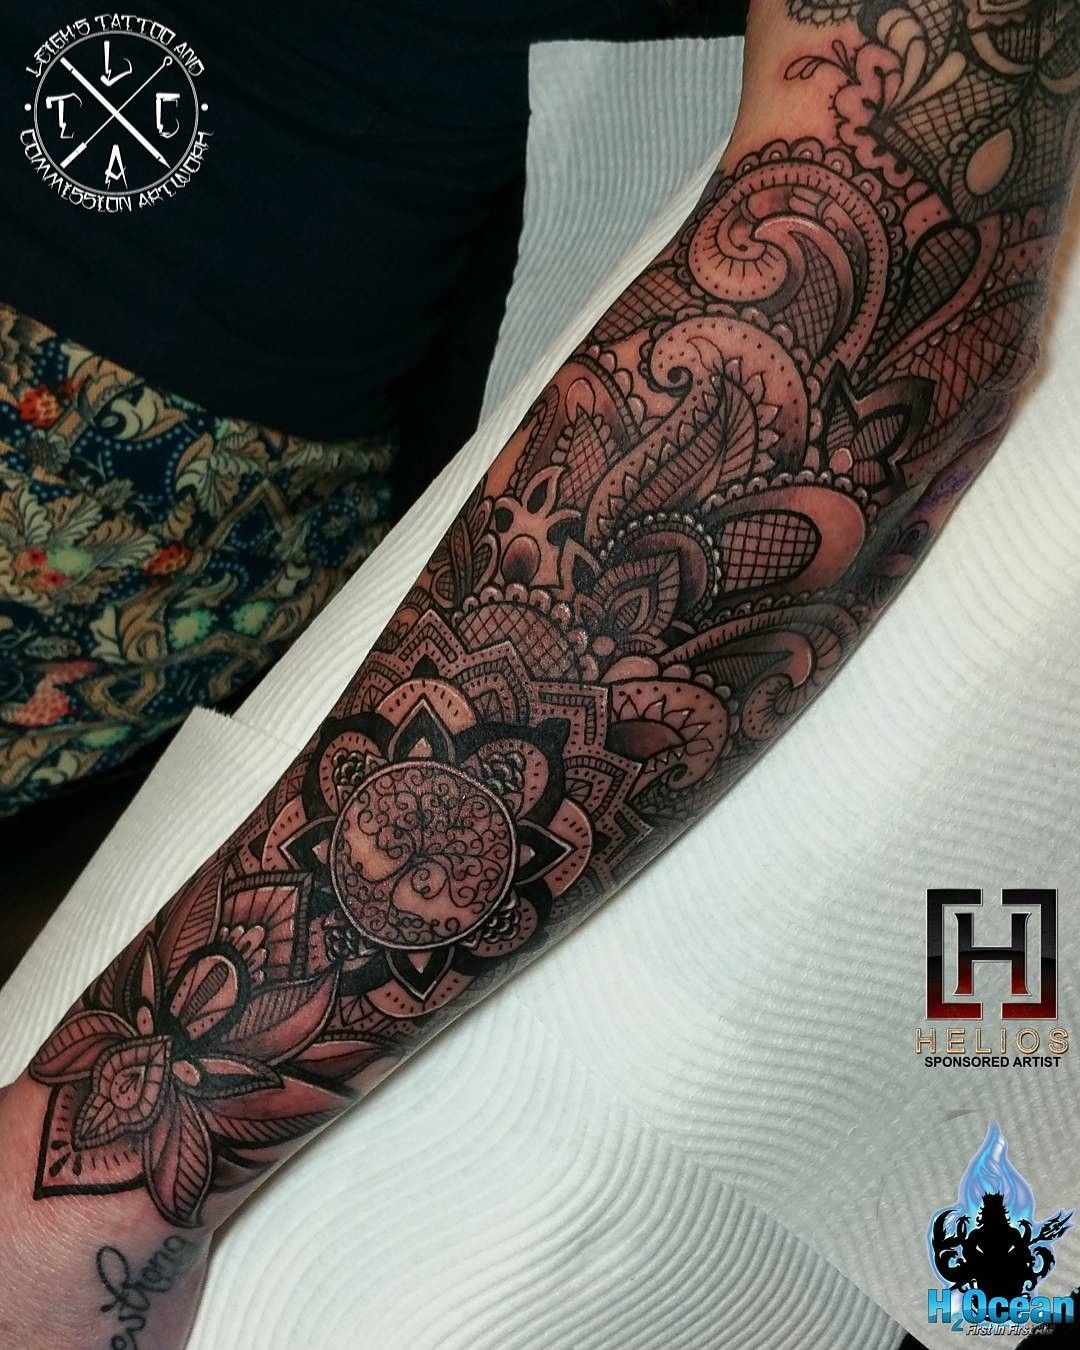 Forearm Section Of The Mandala Lace Sleeve Insta Leigh Tattoos For All Bookings An Enquiries Contact Directly At Fb Leighs Lace Tattoo Tattoo Work Tattoos